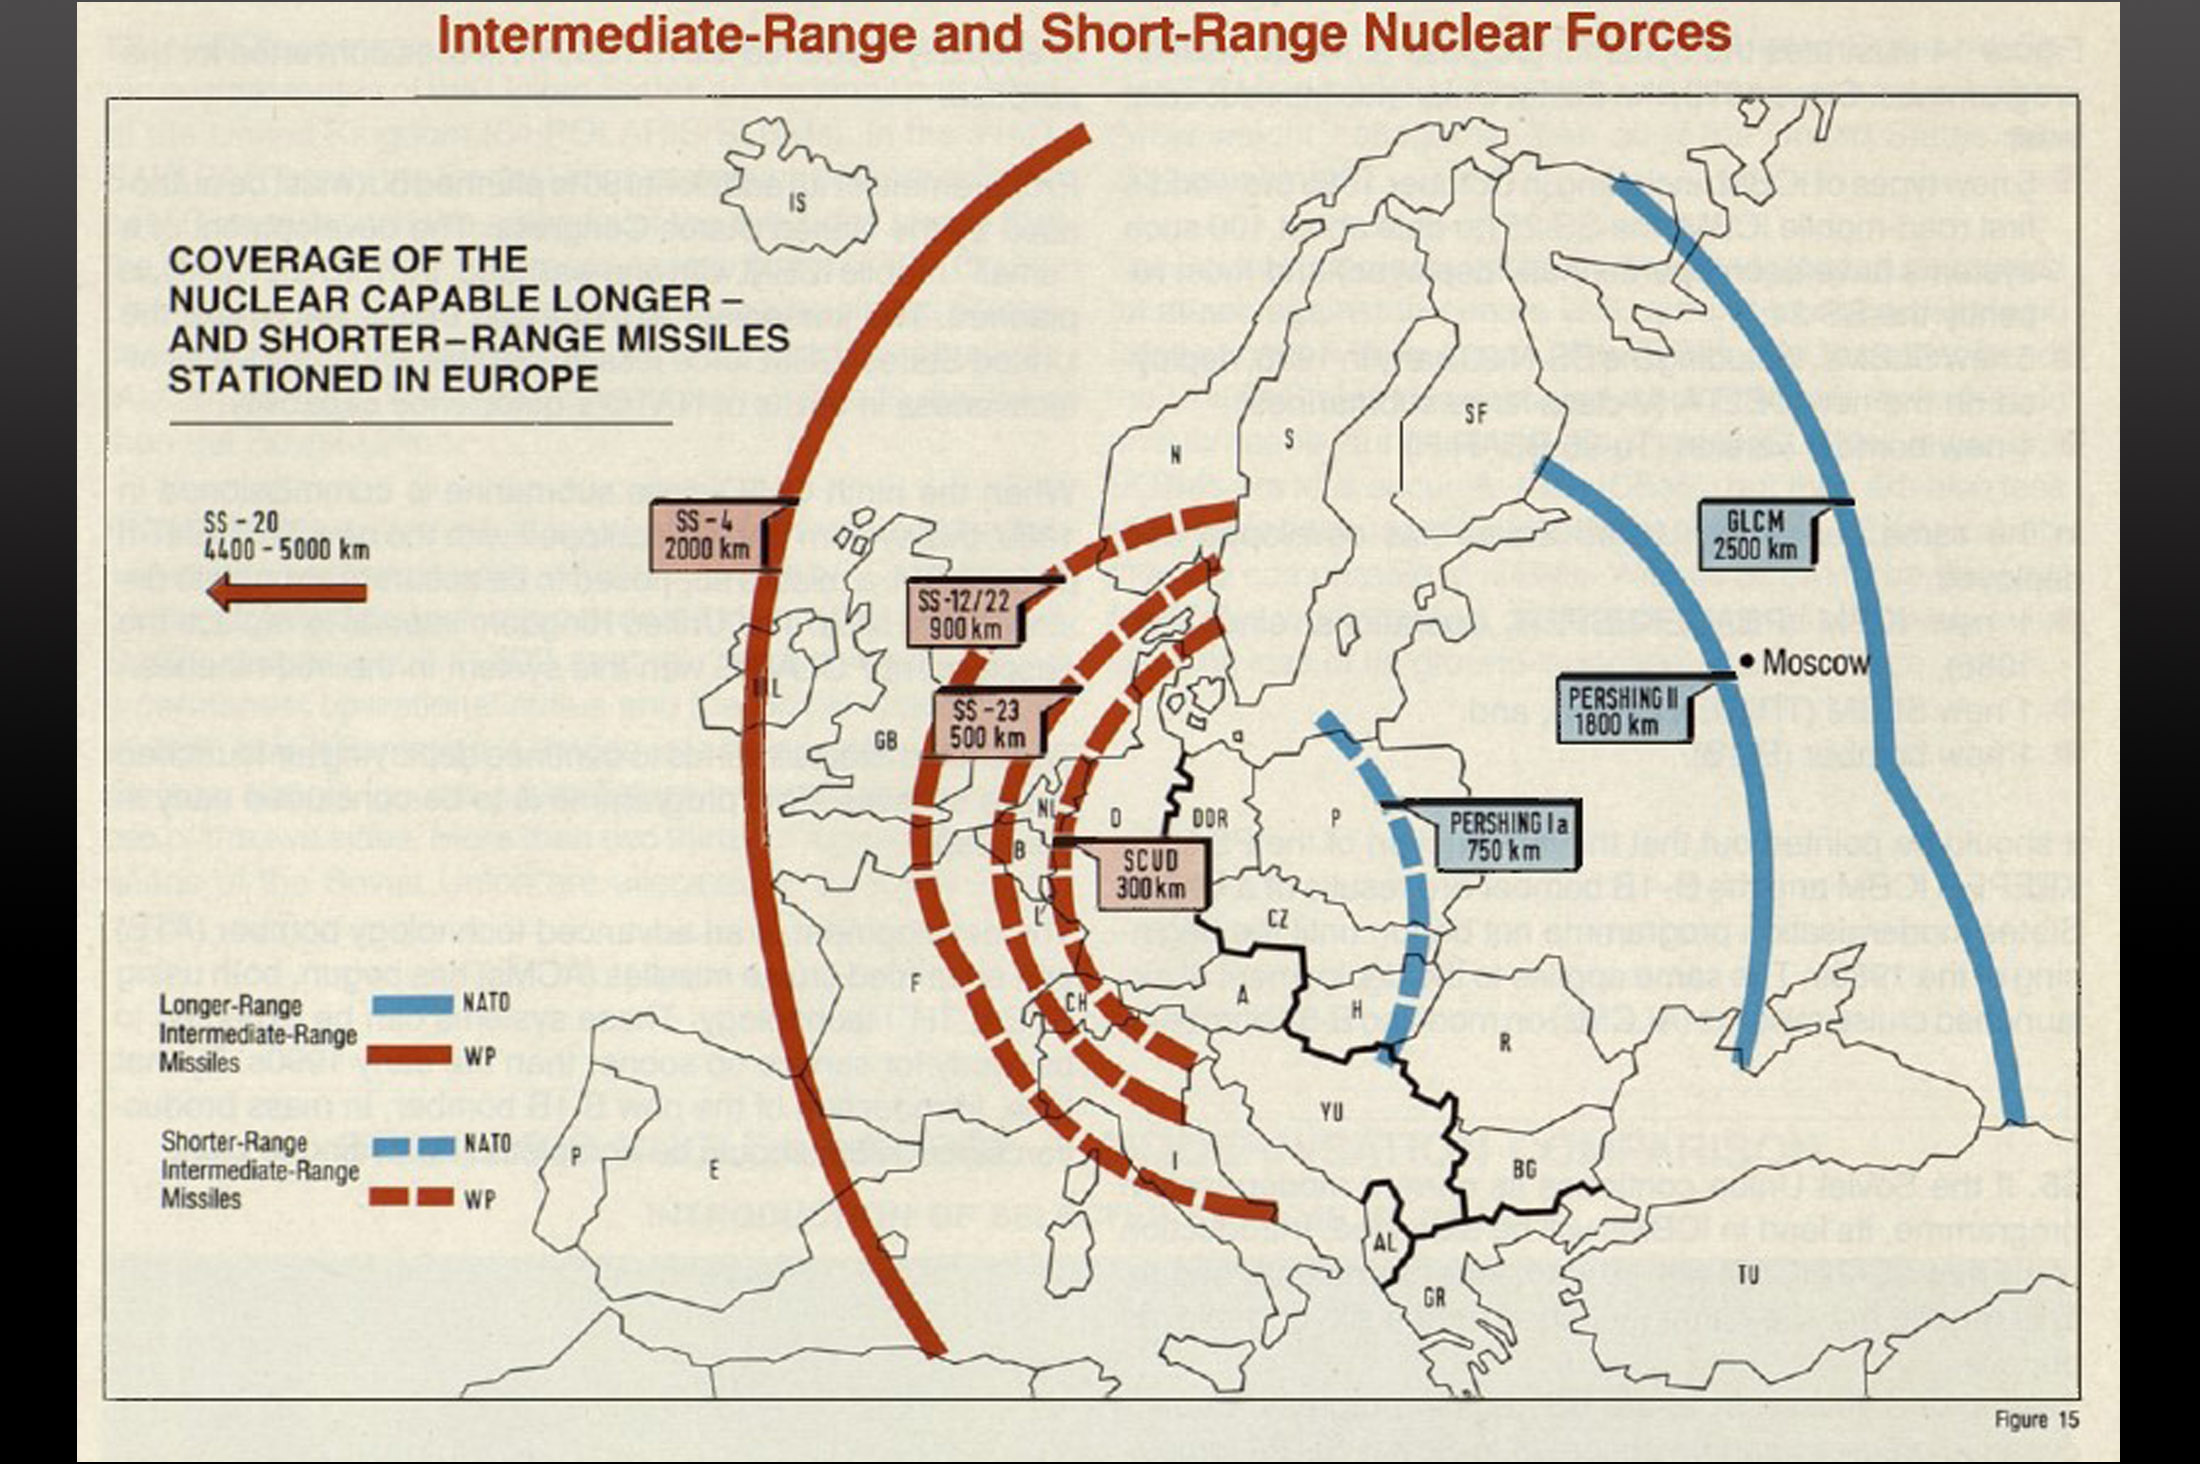 Intermediate-range and short-range nuclear forces